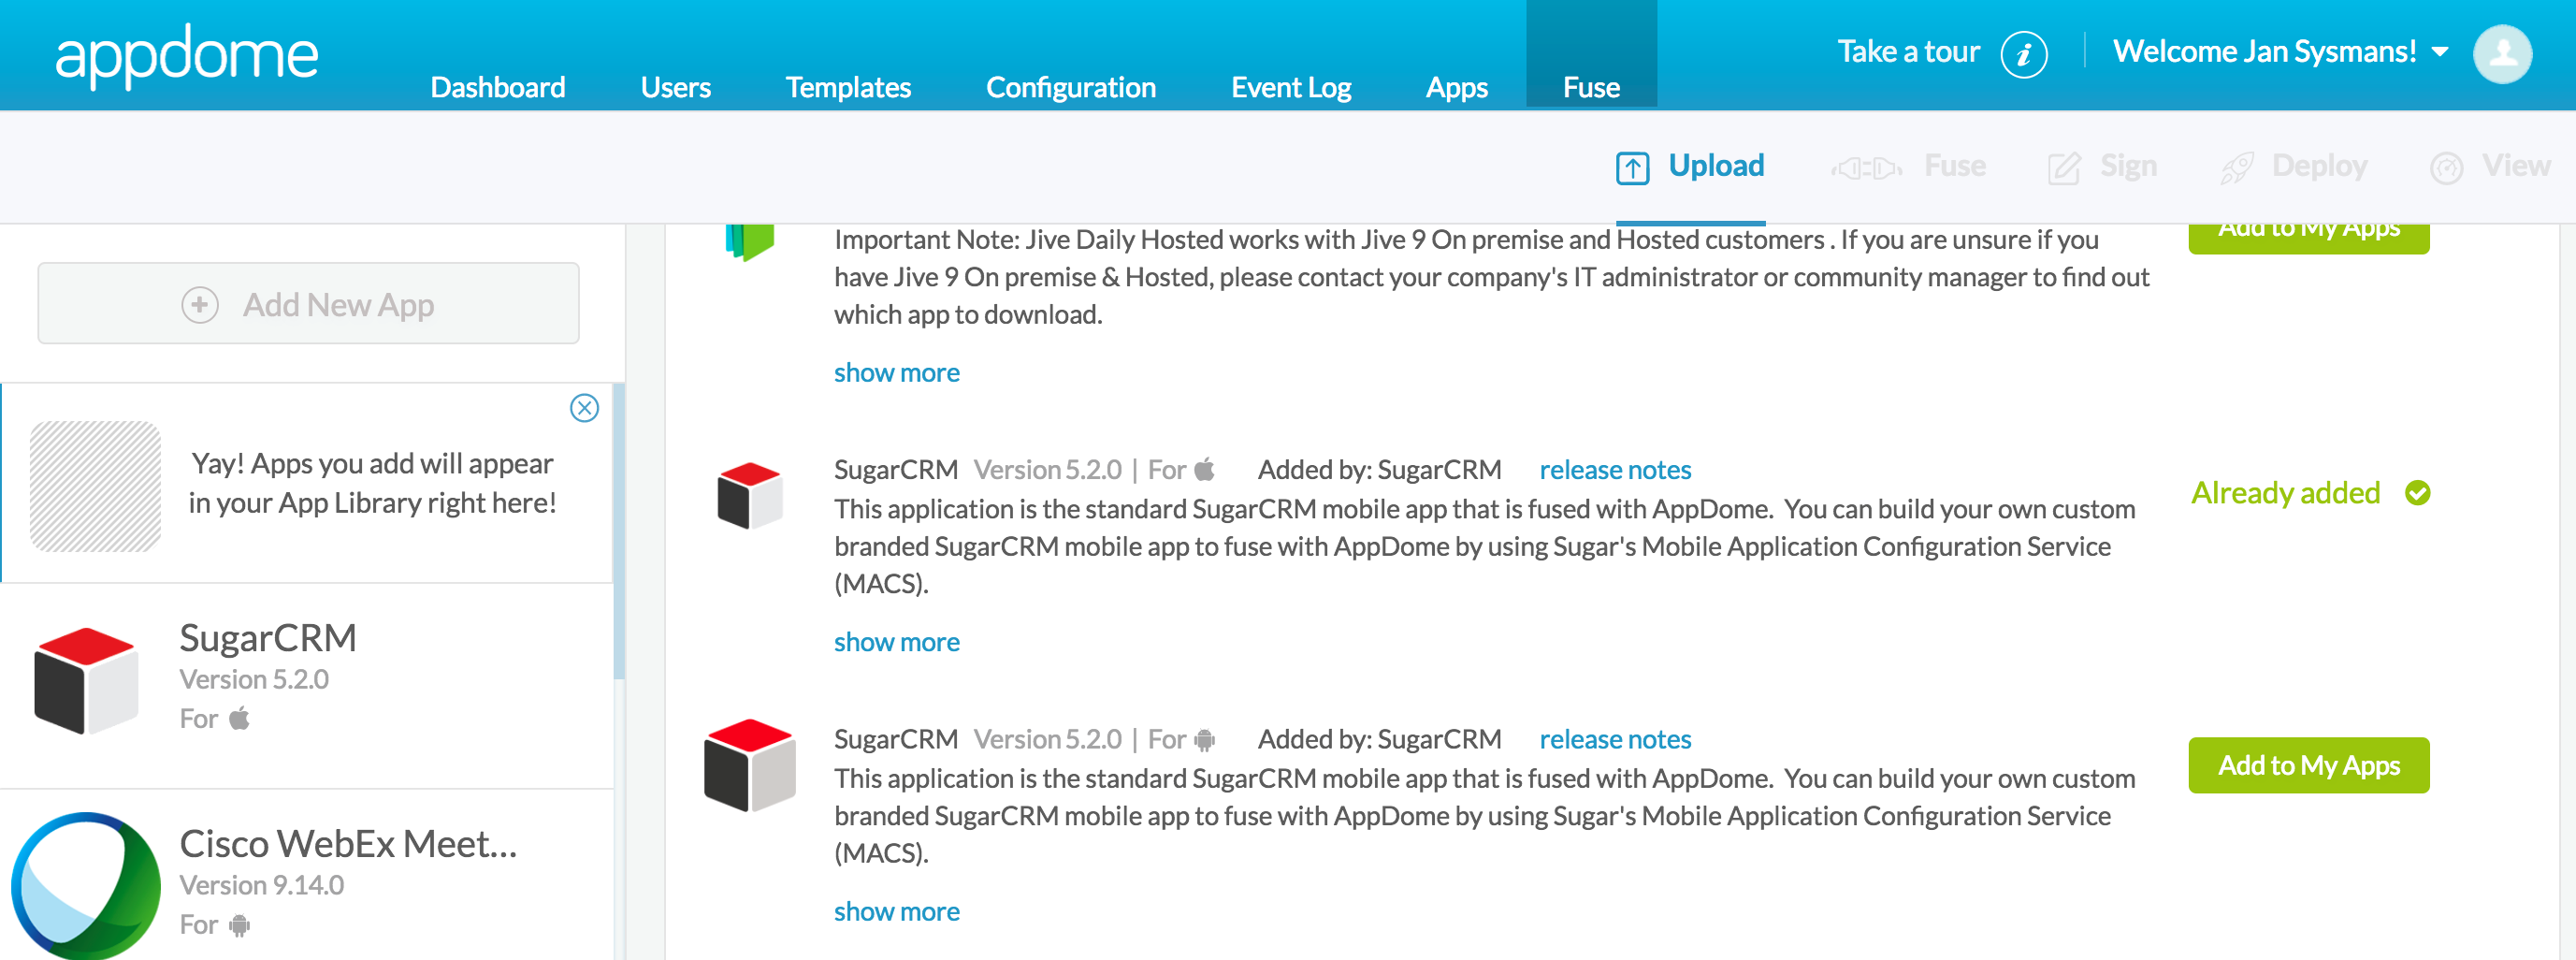 Appdome-welcomes-sugarcrm-to-no-code-integration-1.png